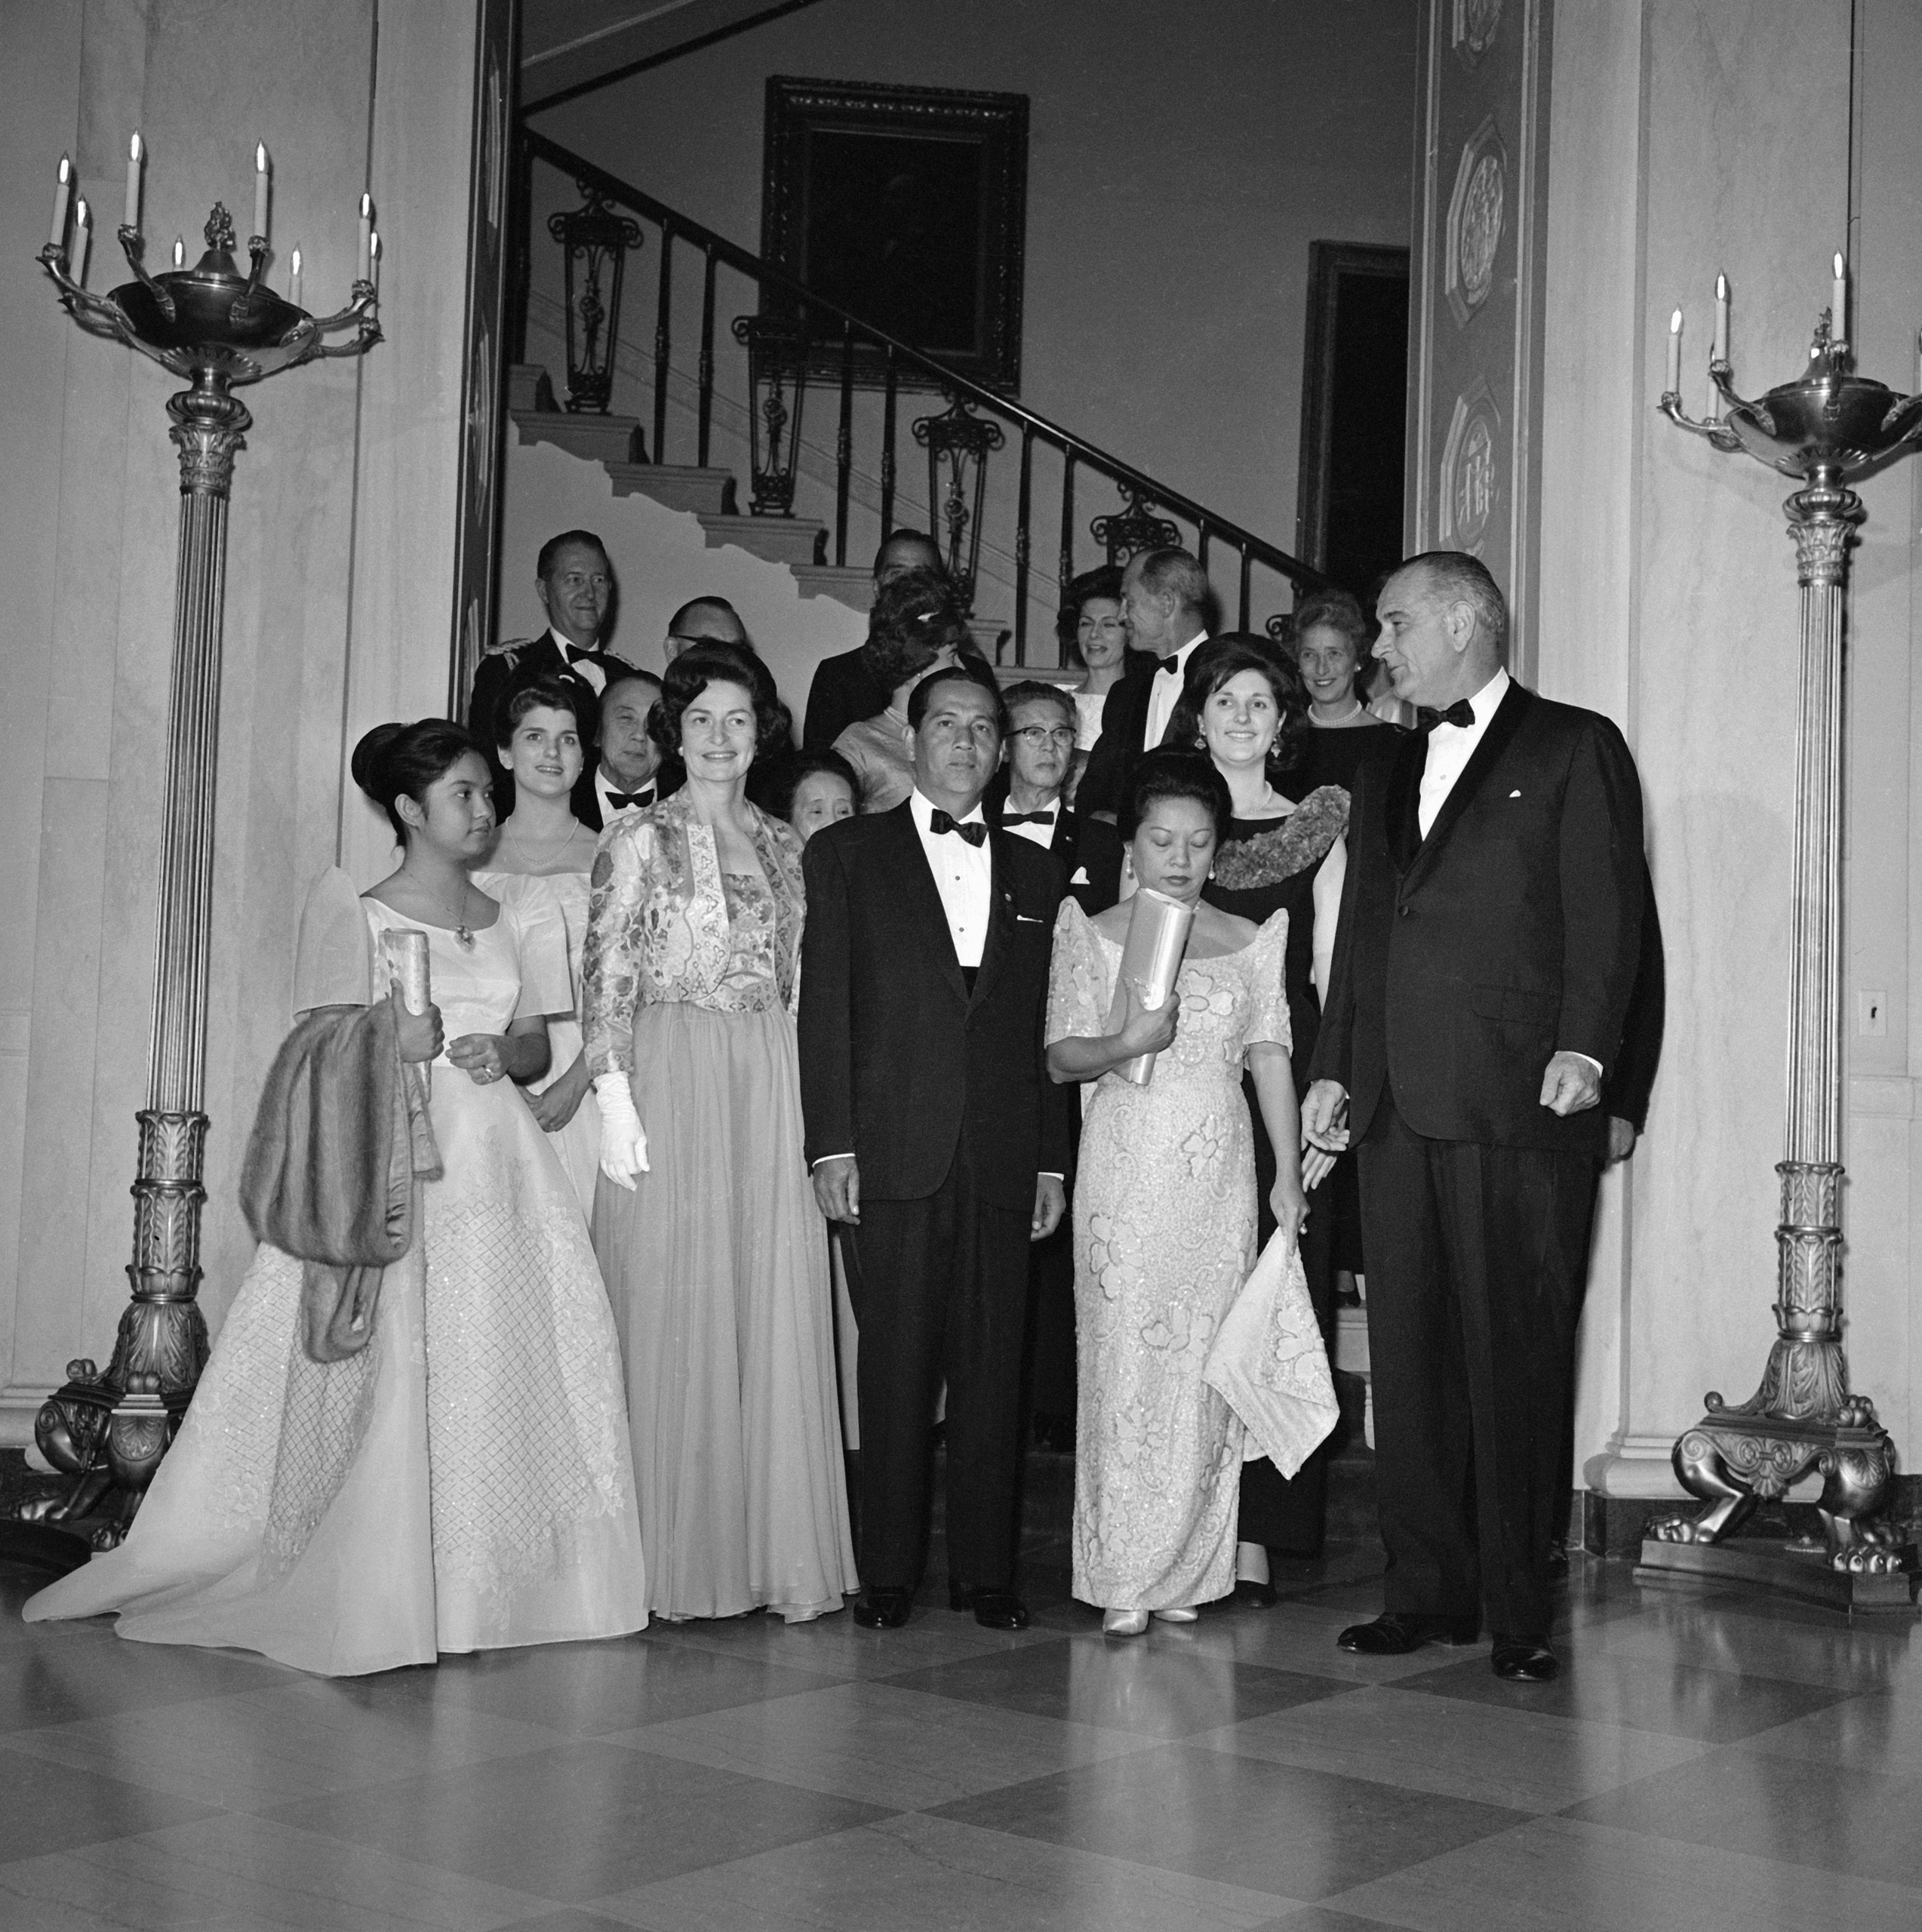 President and Mrs. Johnson entertained guests at a State Dinner in honor of Philippines President and Mrs. Diosdado Macapagal in 1964. Shown here just prior to the dinner are left to right- Gloria Macapagal, daughter of the President; Mrs.Johnson; Philippine Ambassador Oscar Ledesma (partly hidden behind Mrs.Johnson); California Governor Edmund Brown (glasses, behind the Ambassador); Mrs.Ledesma; President Macapagal; Lynda Johnson, daughter of the President; President Johnson; and Secretary of State Dean Rusk (partly hidden behind President Johnson).